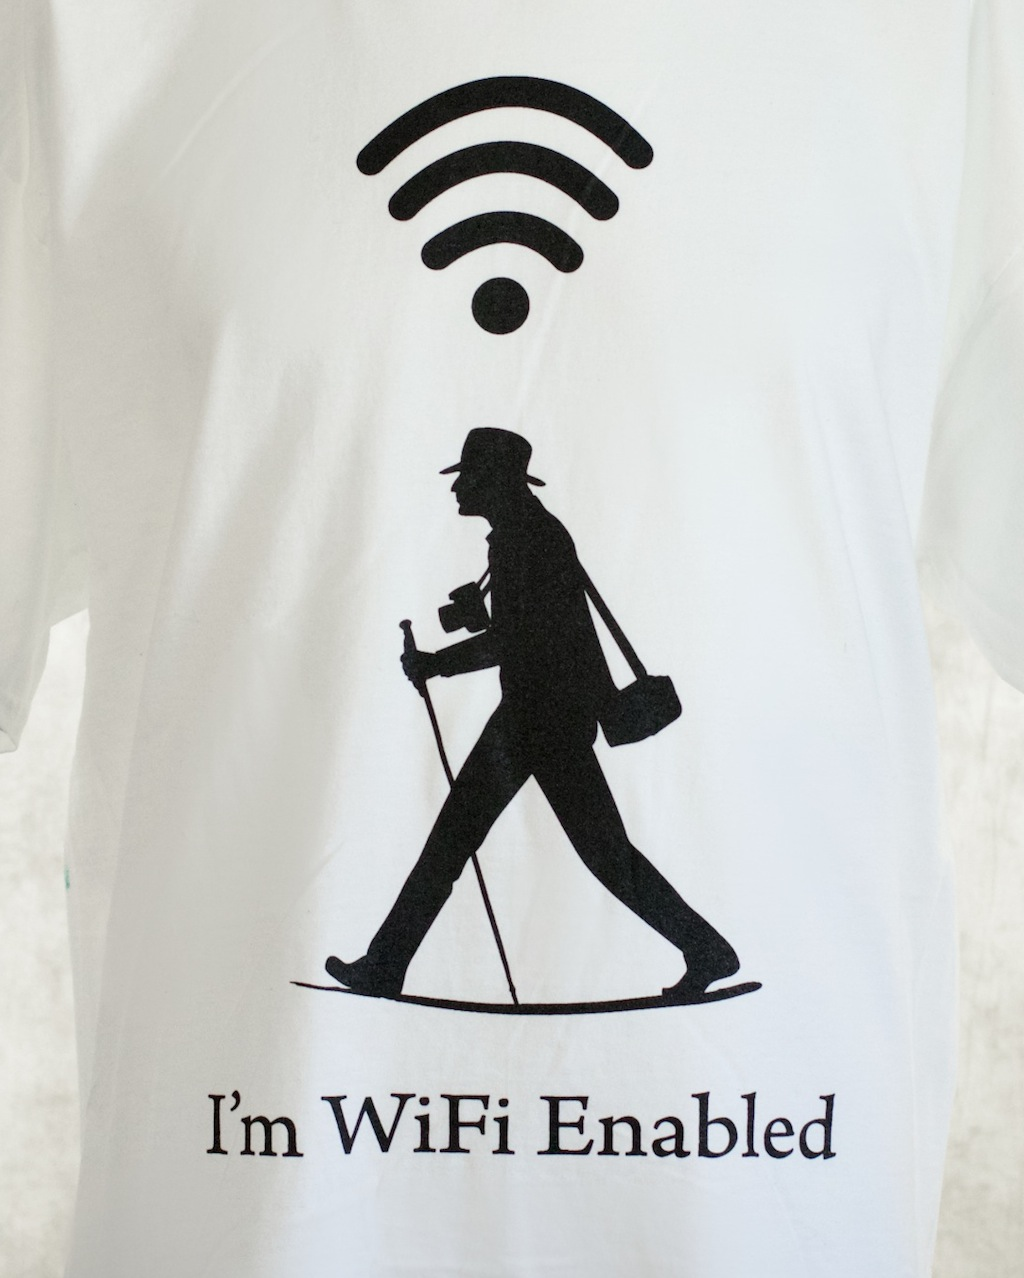 http://thedigitalstory.com/2013/10/15/wifi-enabled-shirt.jpg